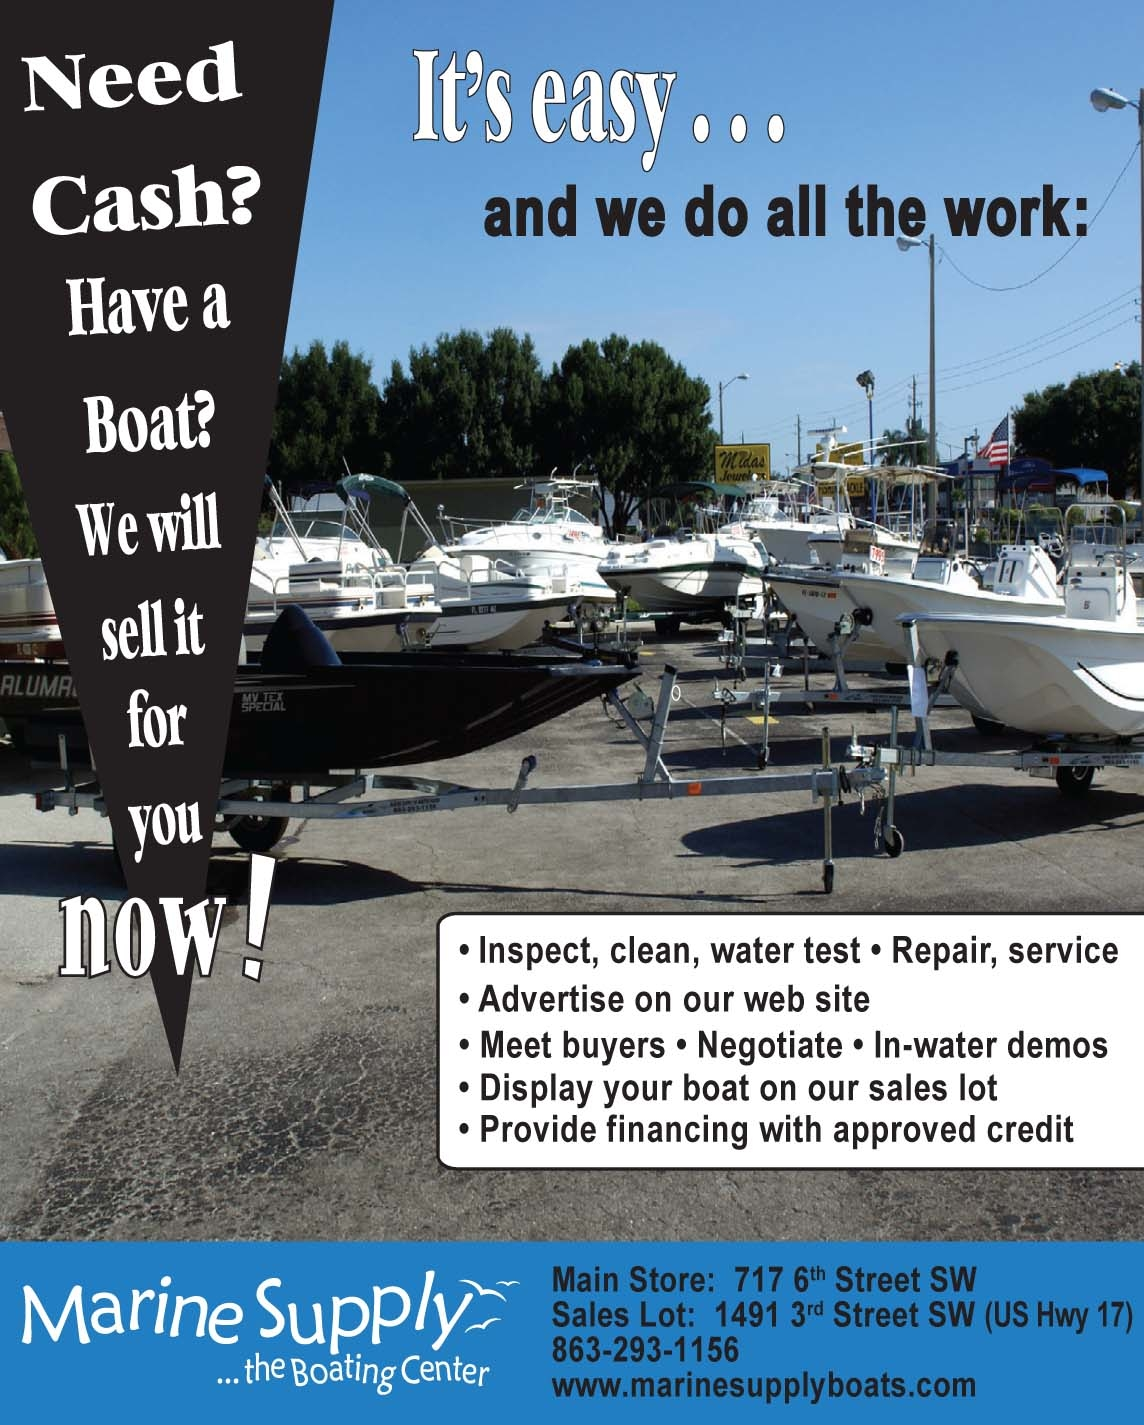 Marine supply boating center coupons near me in winter for Certified yamaha outboard service near me